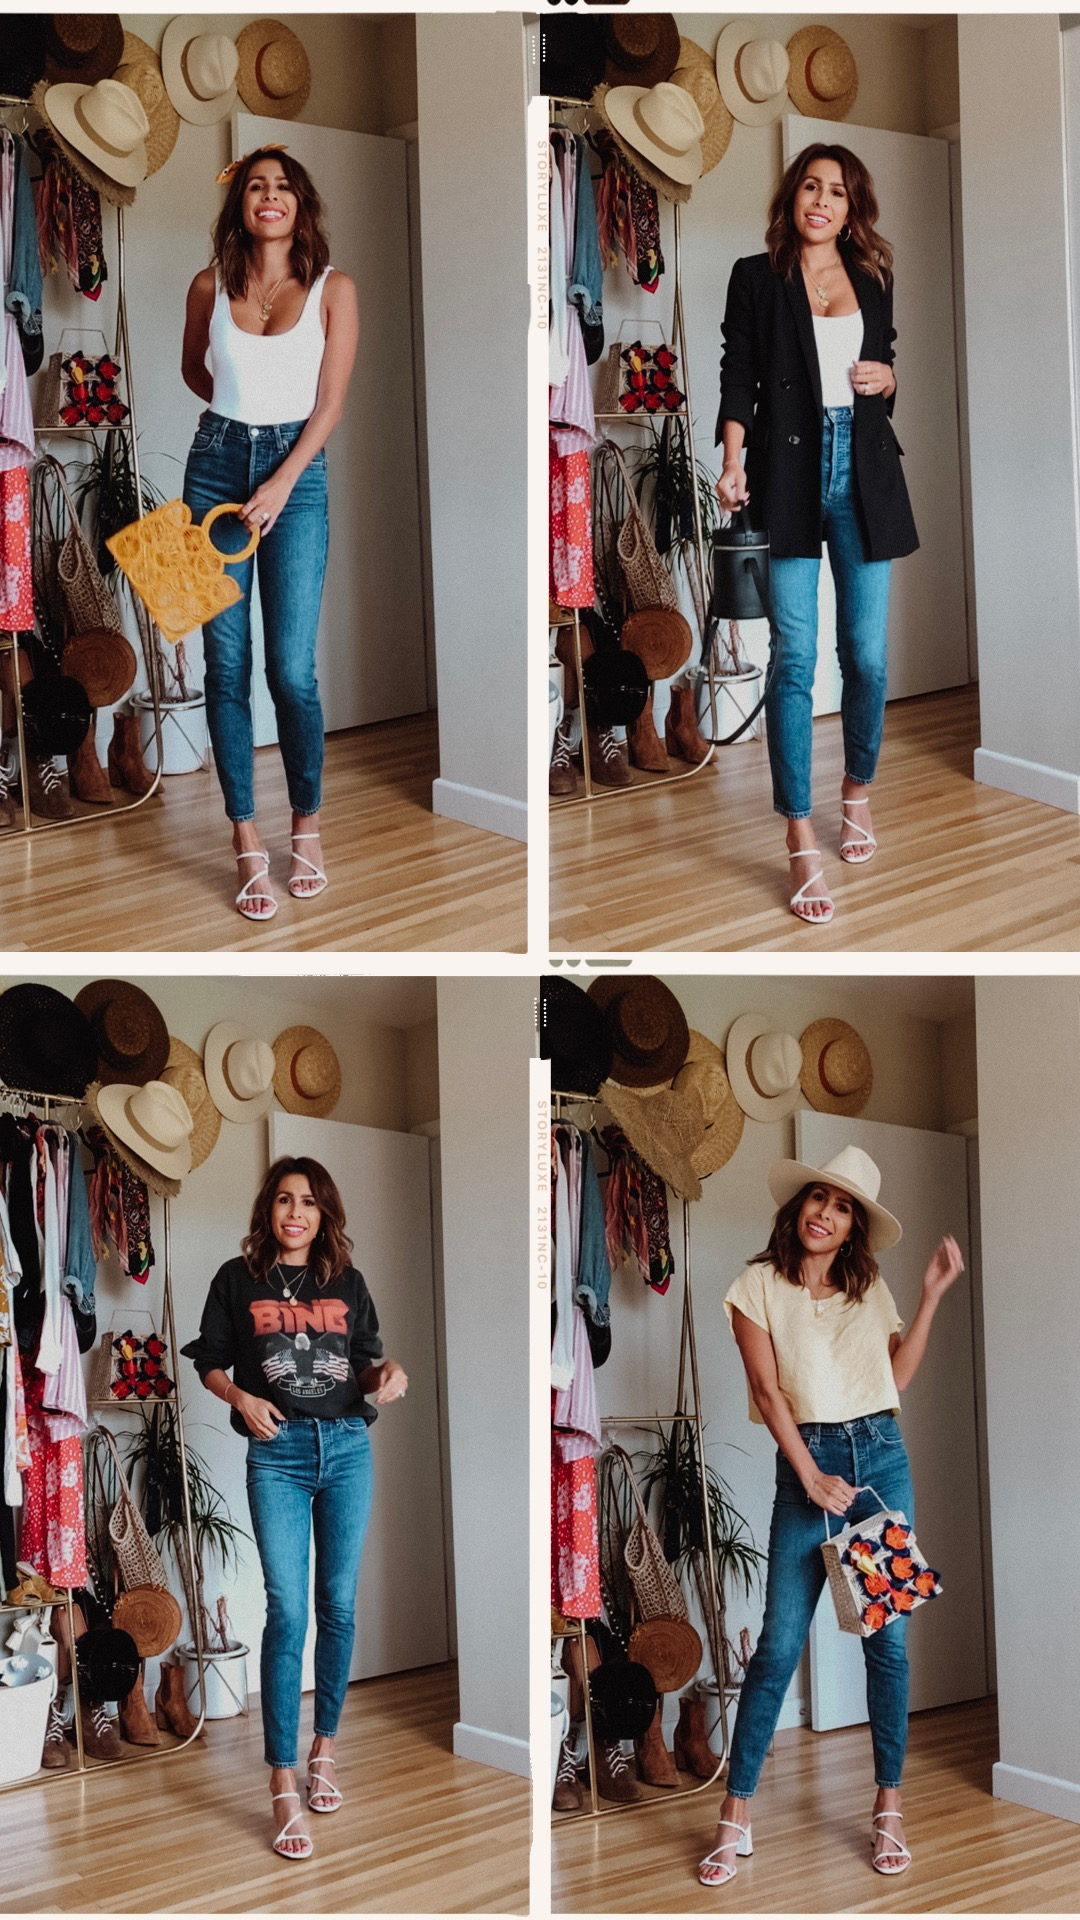 Mom Jeans Outfits 1 - 4